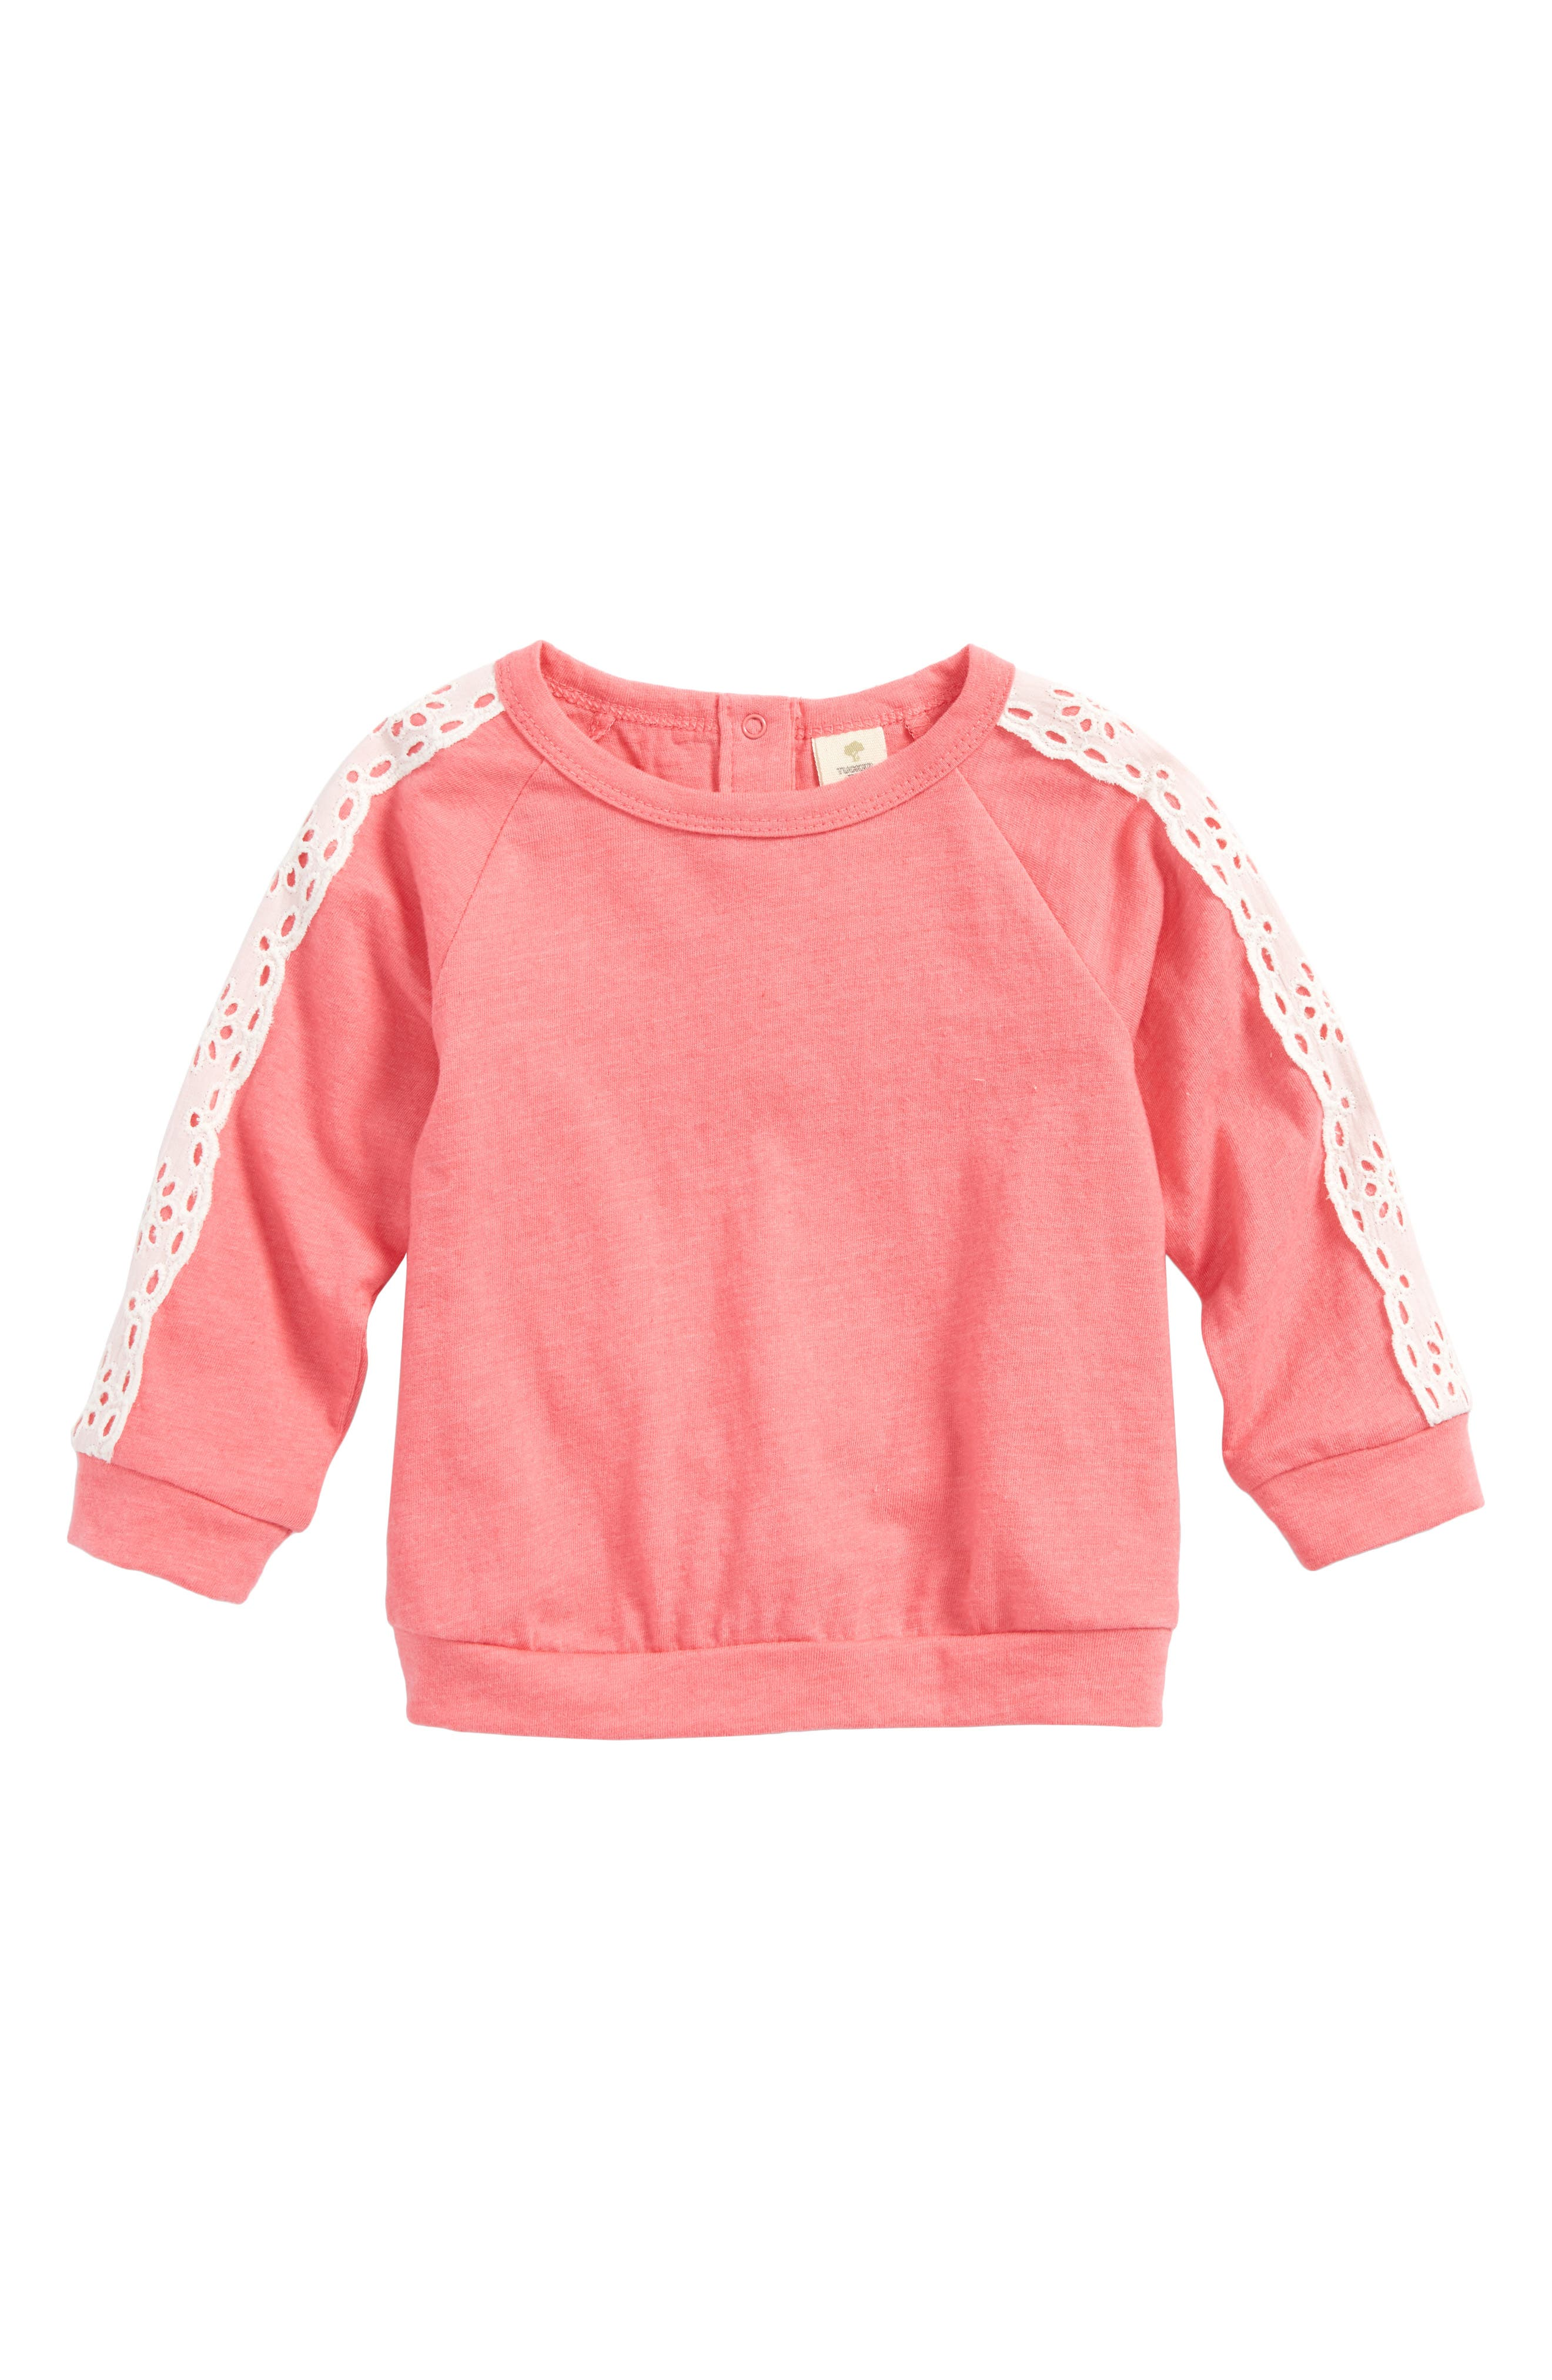 Tucker + Tate Lace Sleeve Top (Baby Girls)